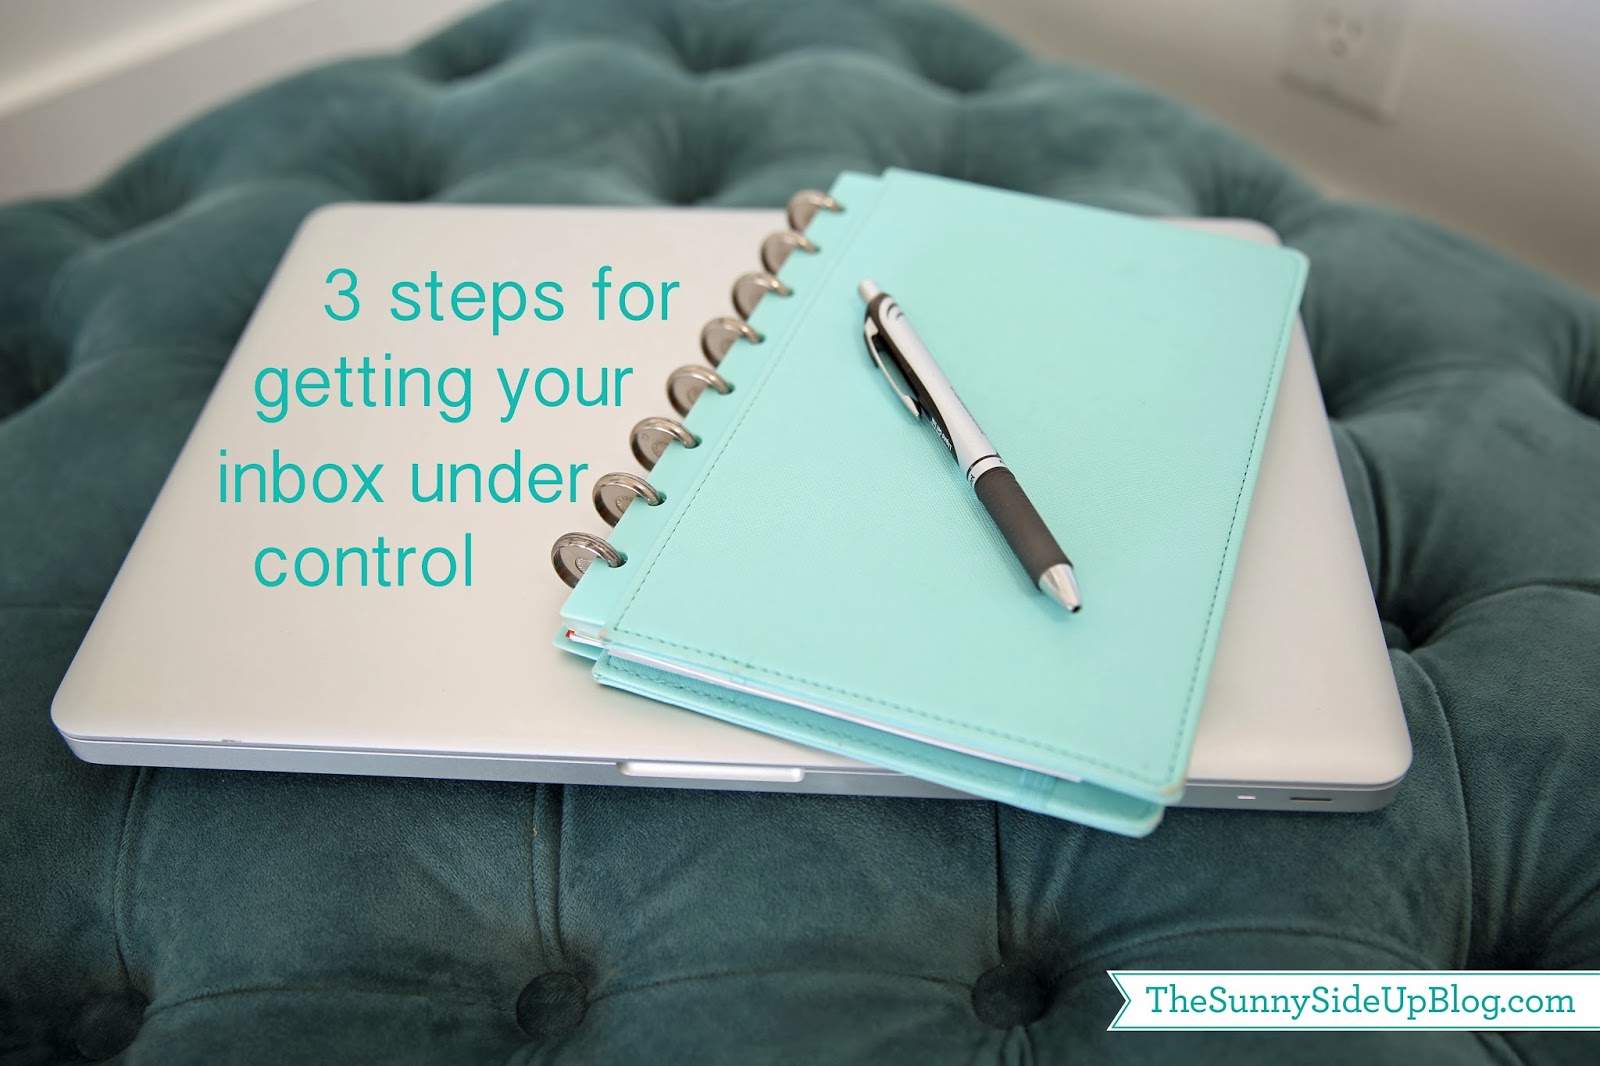 3 steps for getting your inbox under control